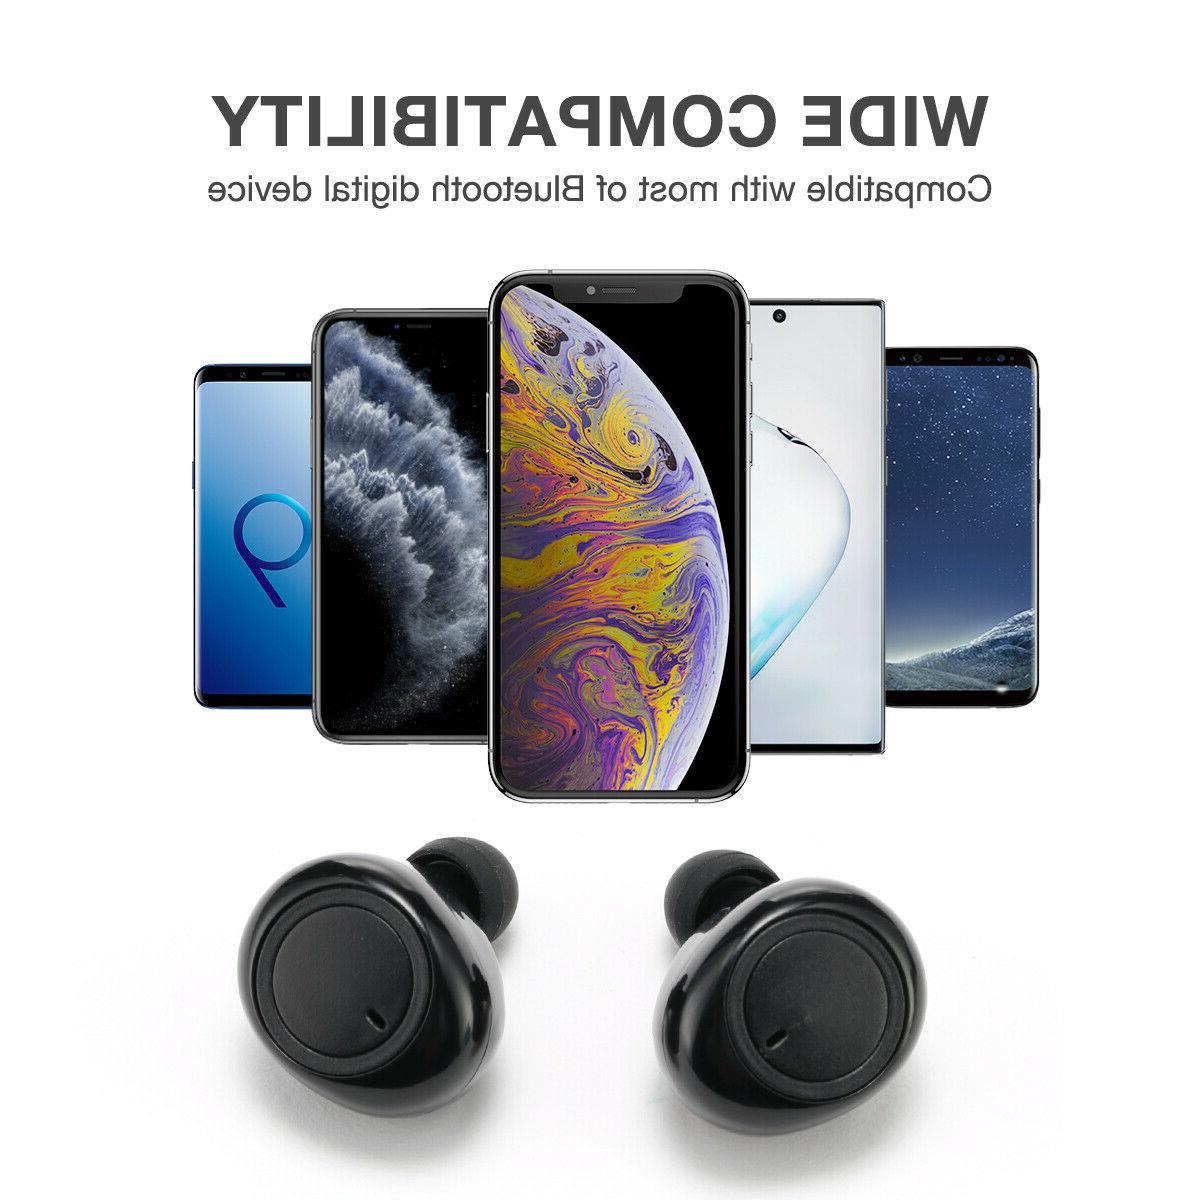 Wireless Bluetooth 5.0 Earbuds for iPhone IOS Android Universal